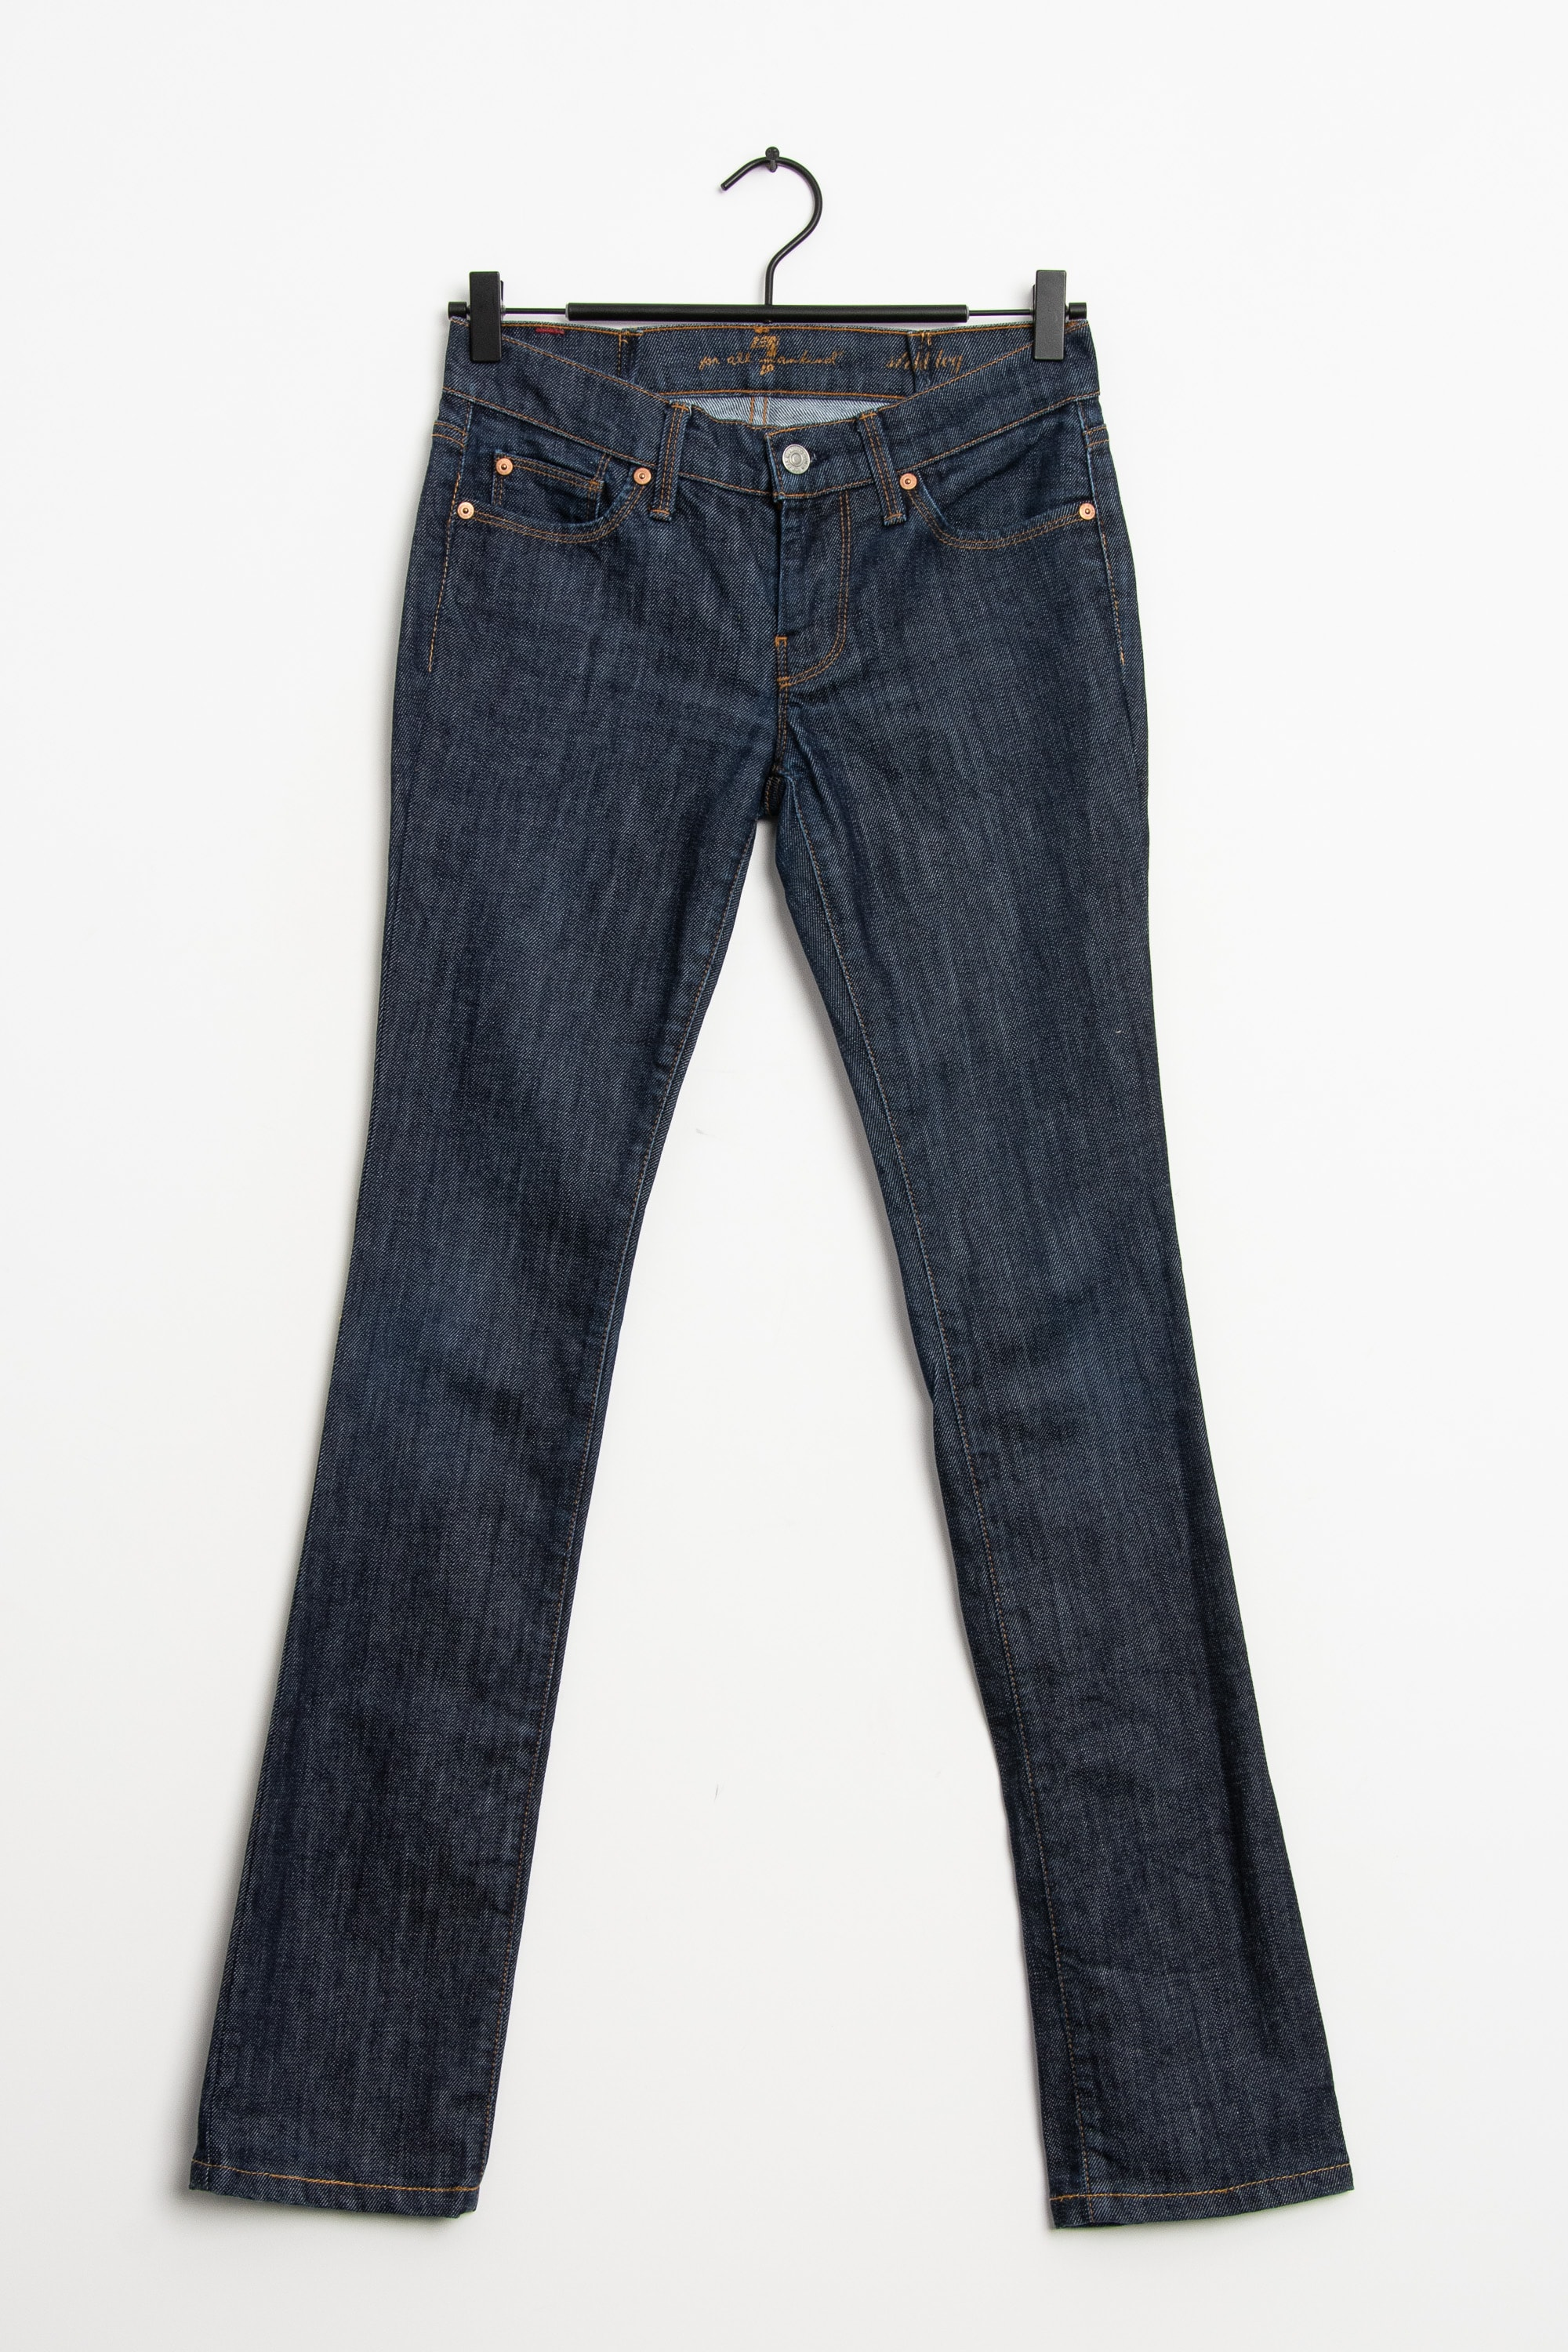 7 FOR ALL MANKIND Jeans Blau Gr.XS